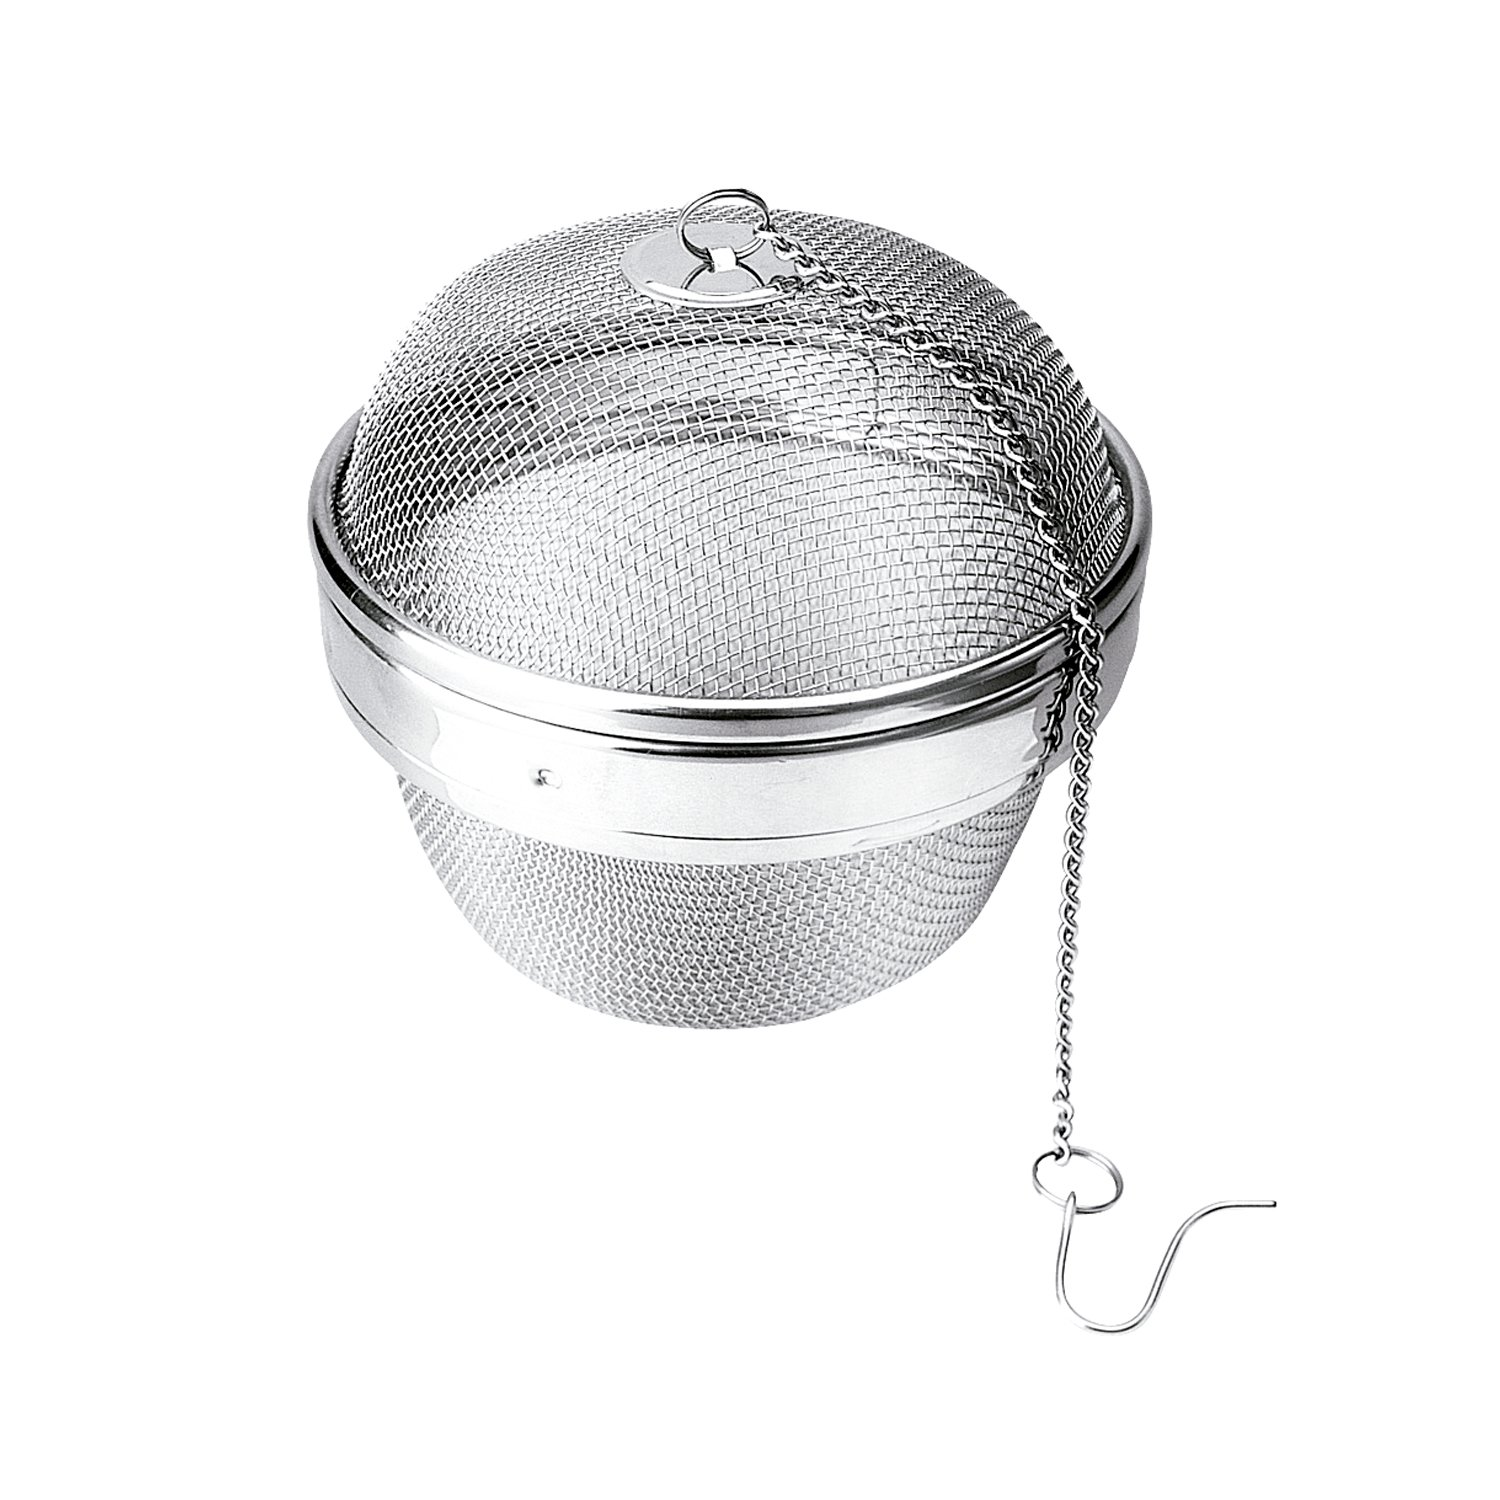 Tescoma Grandchef Infuser, Assorted, 6 cm T428560